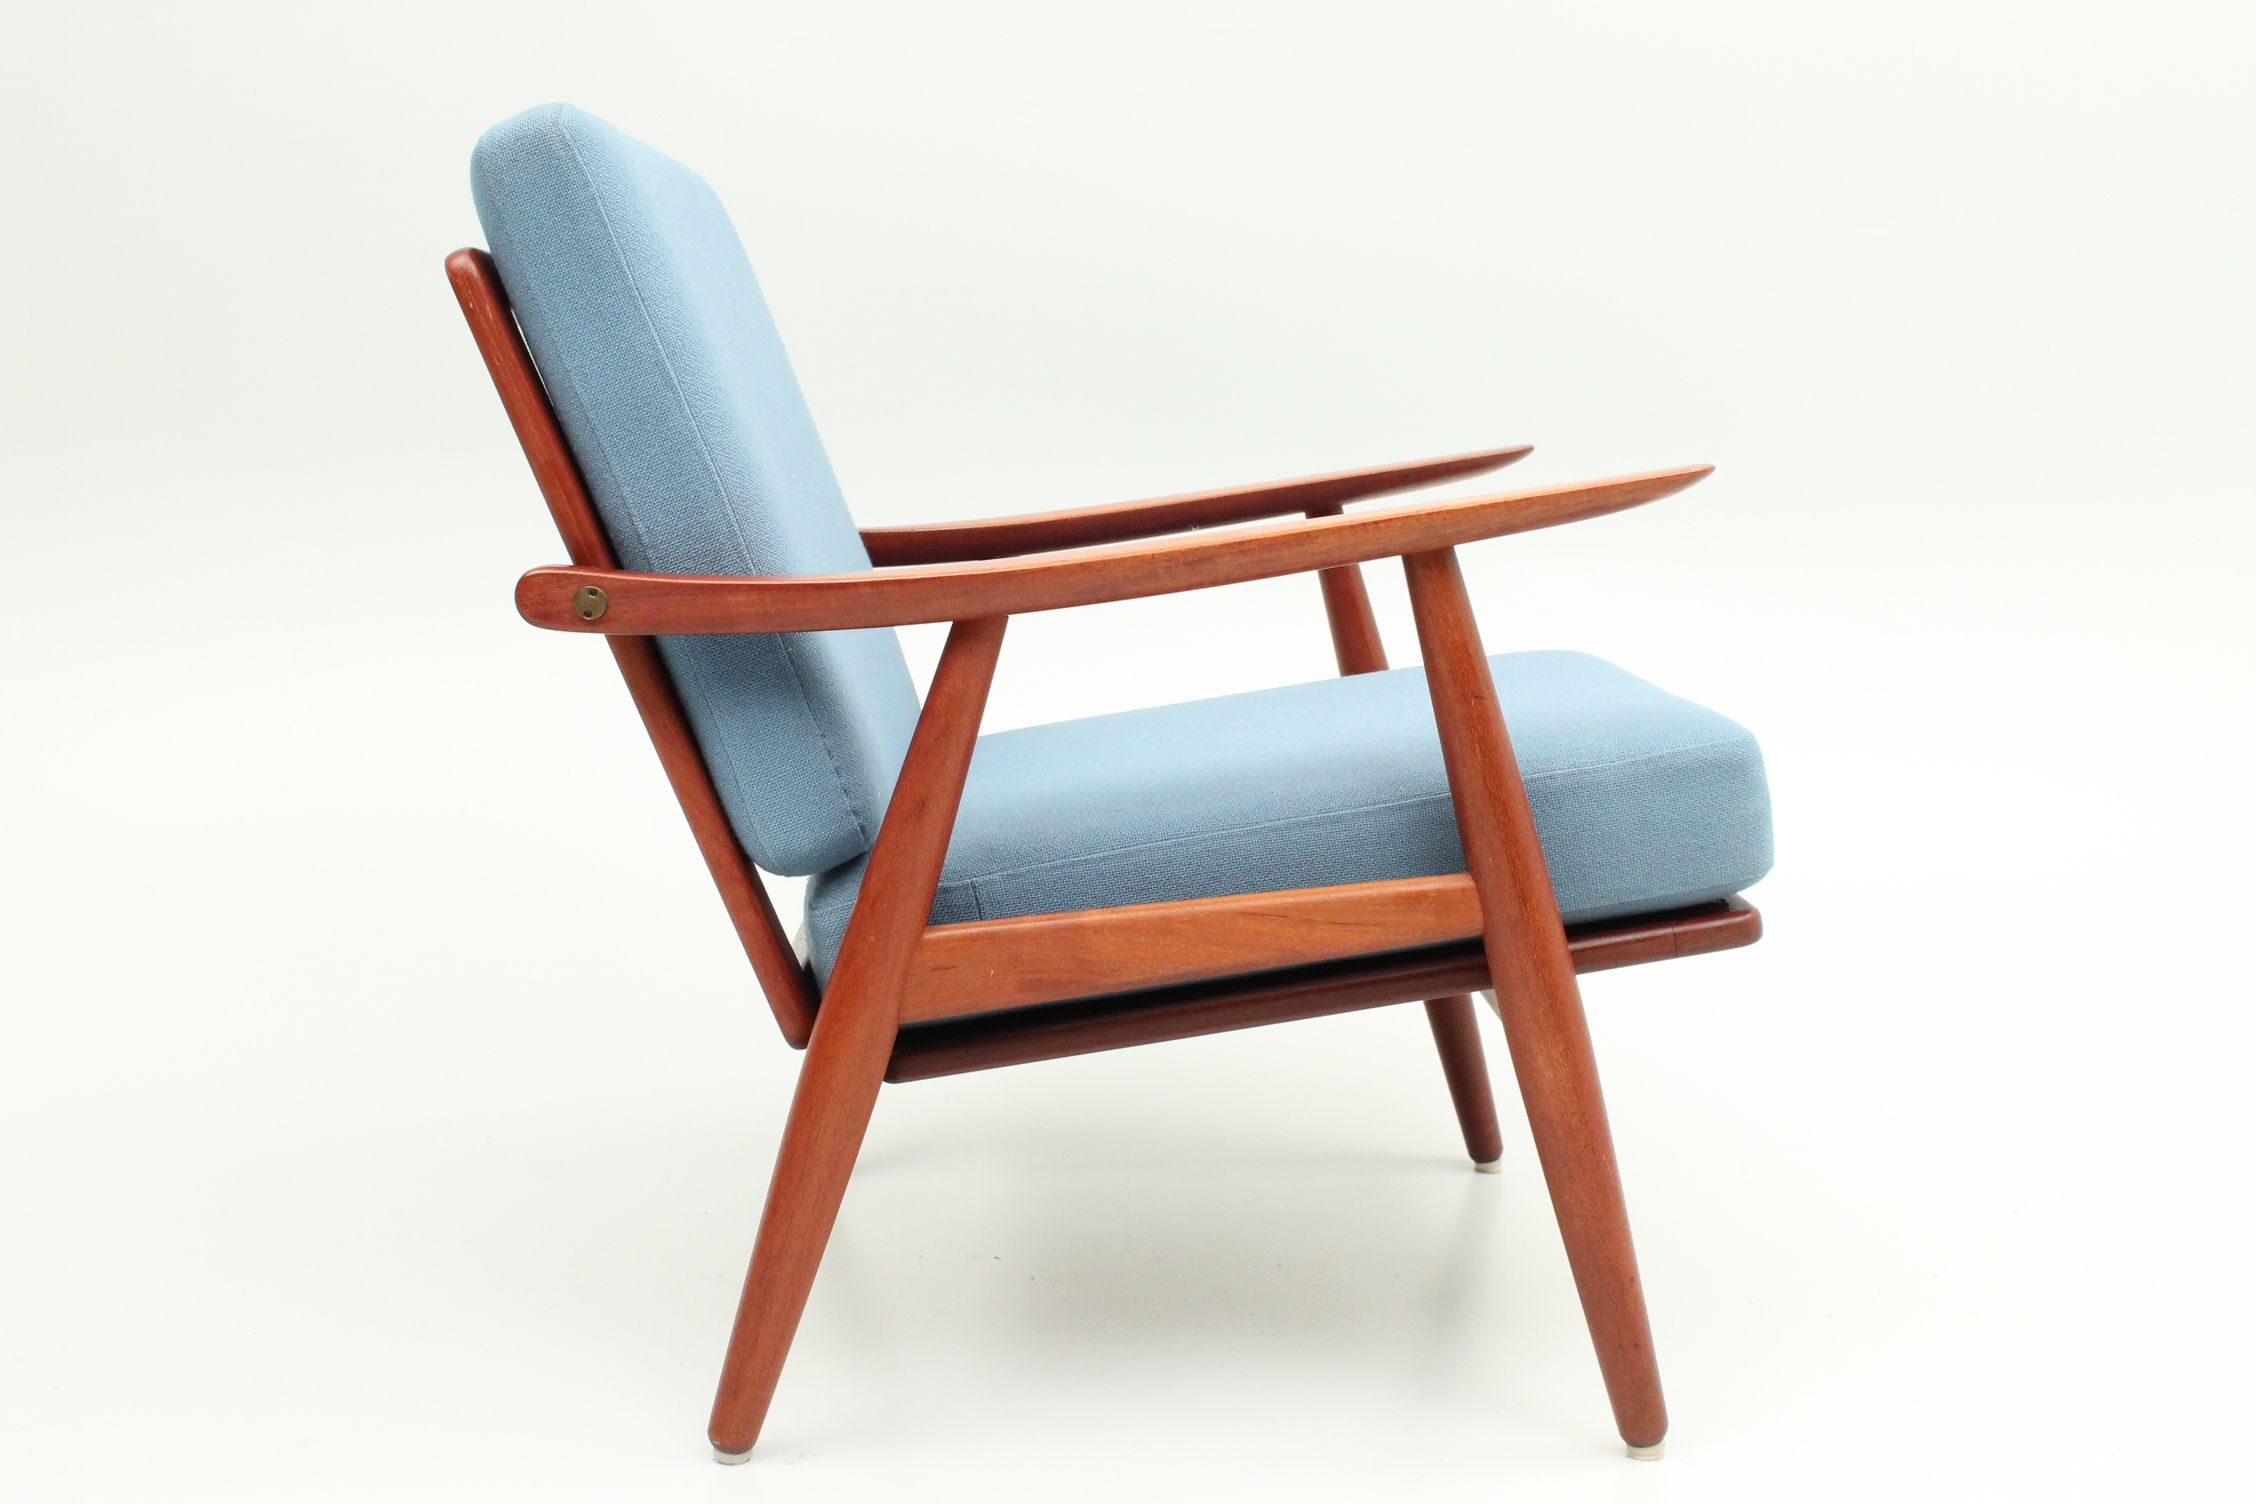 Ge260 Lounger In Teak With Brass Details Designed In 1960 By Hans Jorgen Wegner And Manufactured By Danish Furniture Design Furniture Design Danish Furniture